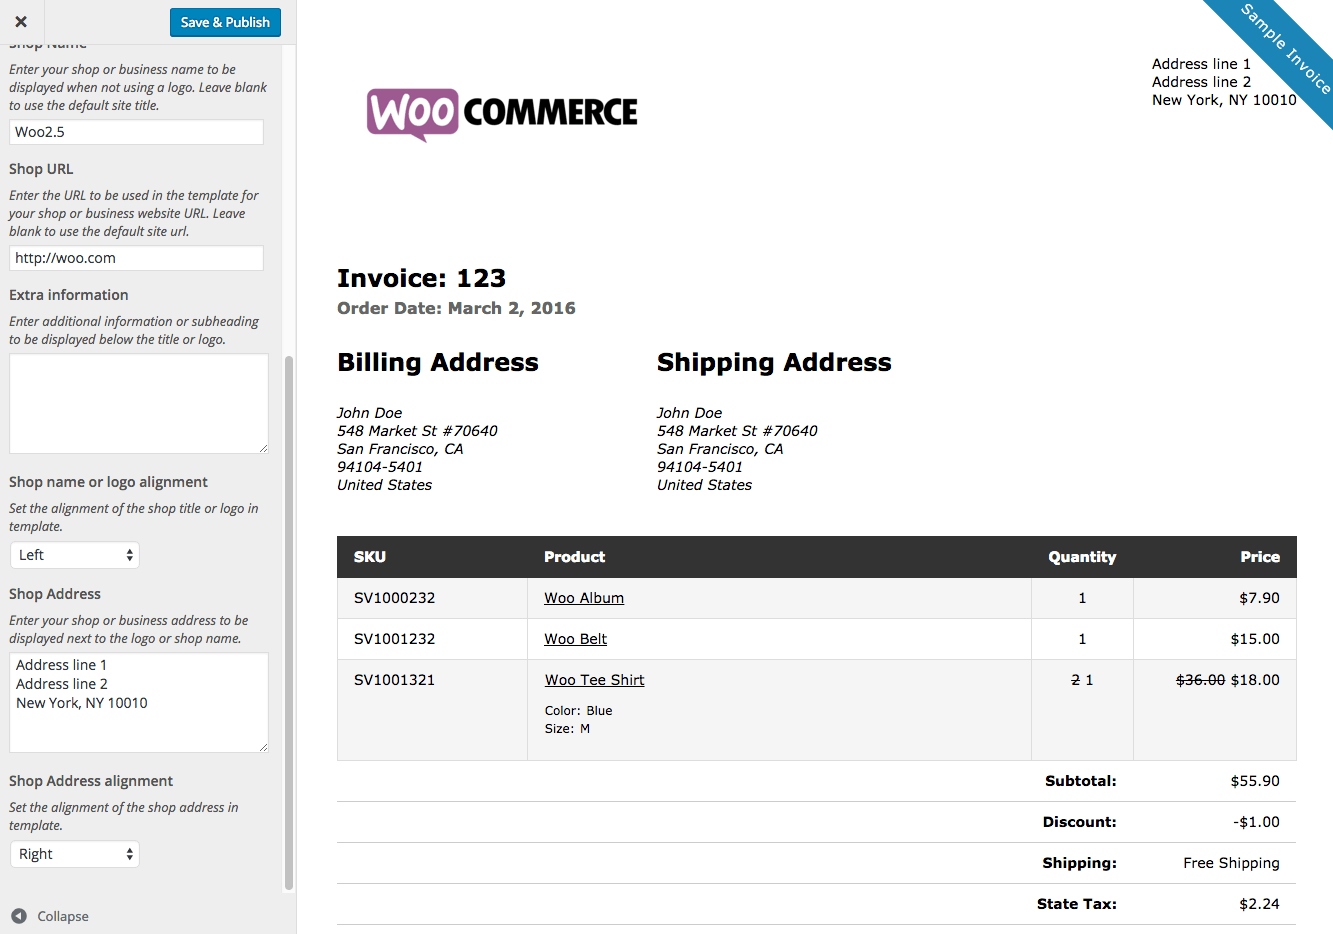 Maidofhonortoastus  Picturesque Woocommerce Print Invoices Amp Packing Lists  Woocommerce Docs With Lovable Woocommerce Print Invoices  Packing Lists Customizer With Enchanting Hertz Rental Receipt Also Delta Receipts In Addition Gap Return Policy Without Receipt And Rent Receipt Template Word As Well As Renters Insurance Claim Without Receipts Additionally Print Receipt From Docswoocommercecom With Maidofhonortoastus  Lovable Woocommerce Print Invoices Amp Packing Lists  Woocommerce Docs With Enchanting Woocommerce Print Invoices  Packing Lists Customizer And Picturesque Hertz Rental Receipt Also Delta Receipts In Addition Gap Return Policy Without Receipt From Docswoocommercecom